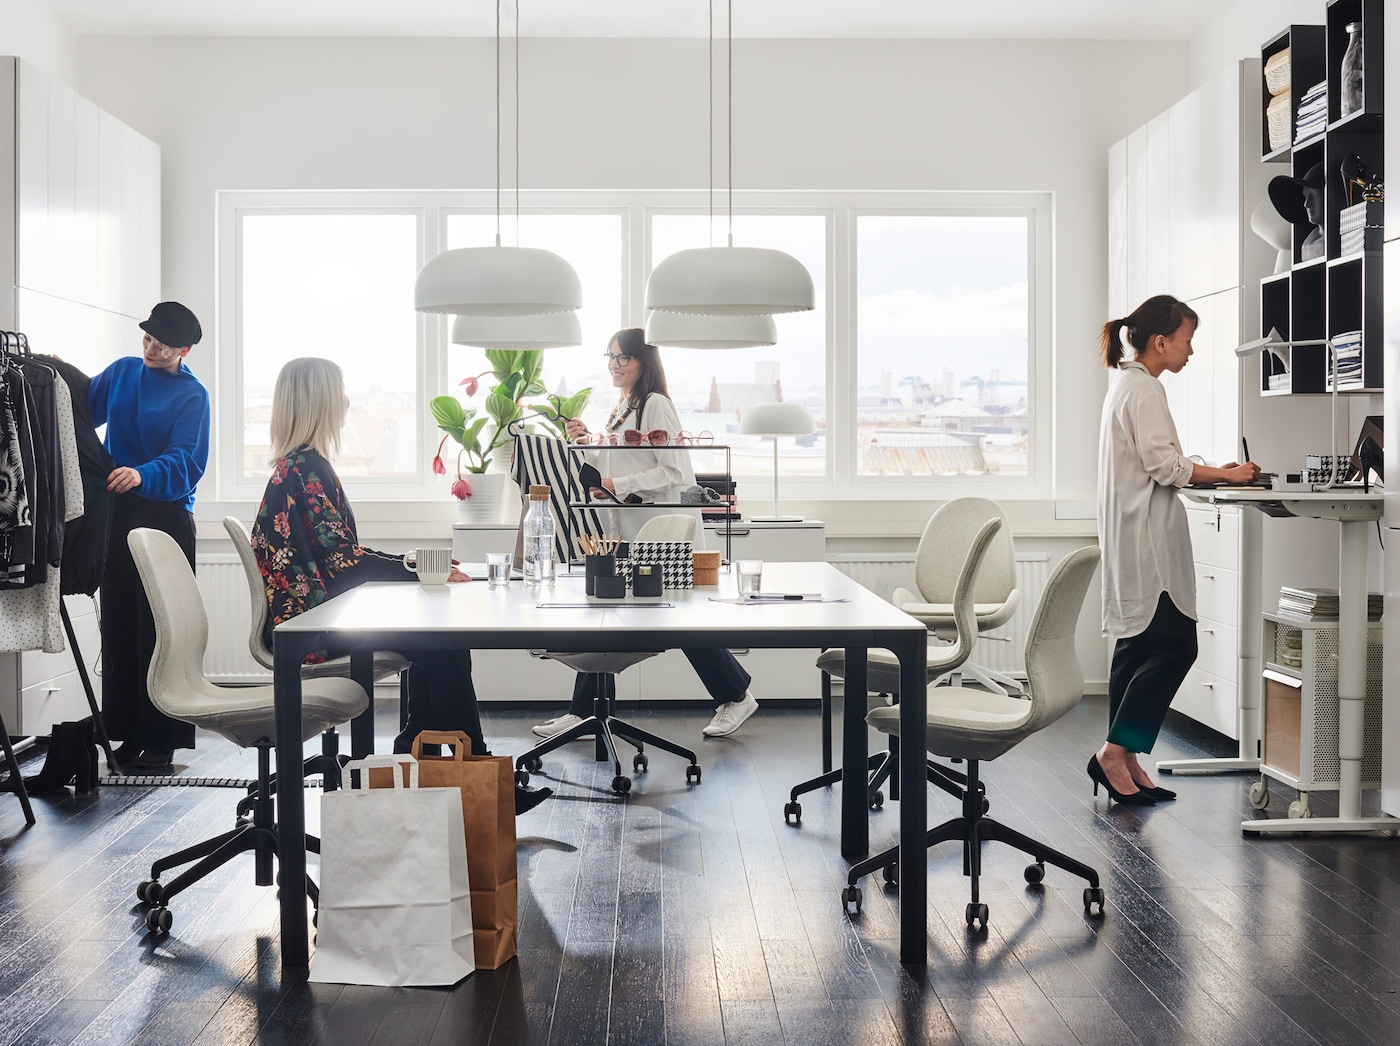 Contemporary white office setting including BEKANT white sit-stand desks and black shelving organisation units.